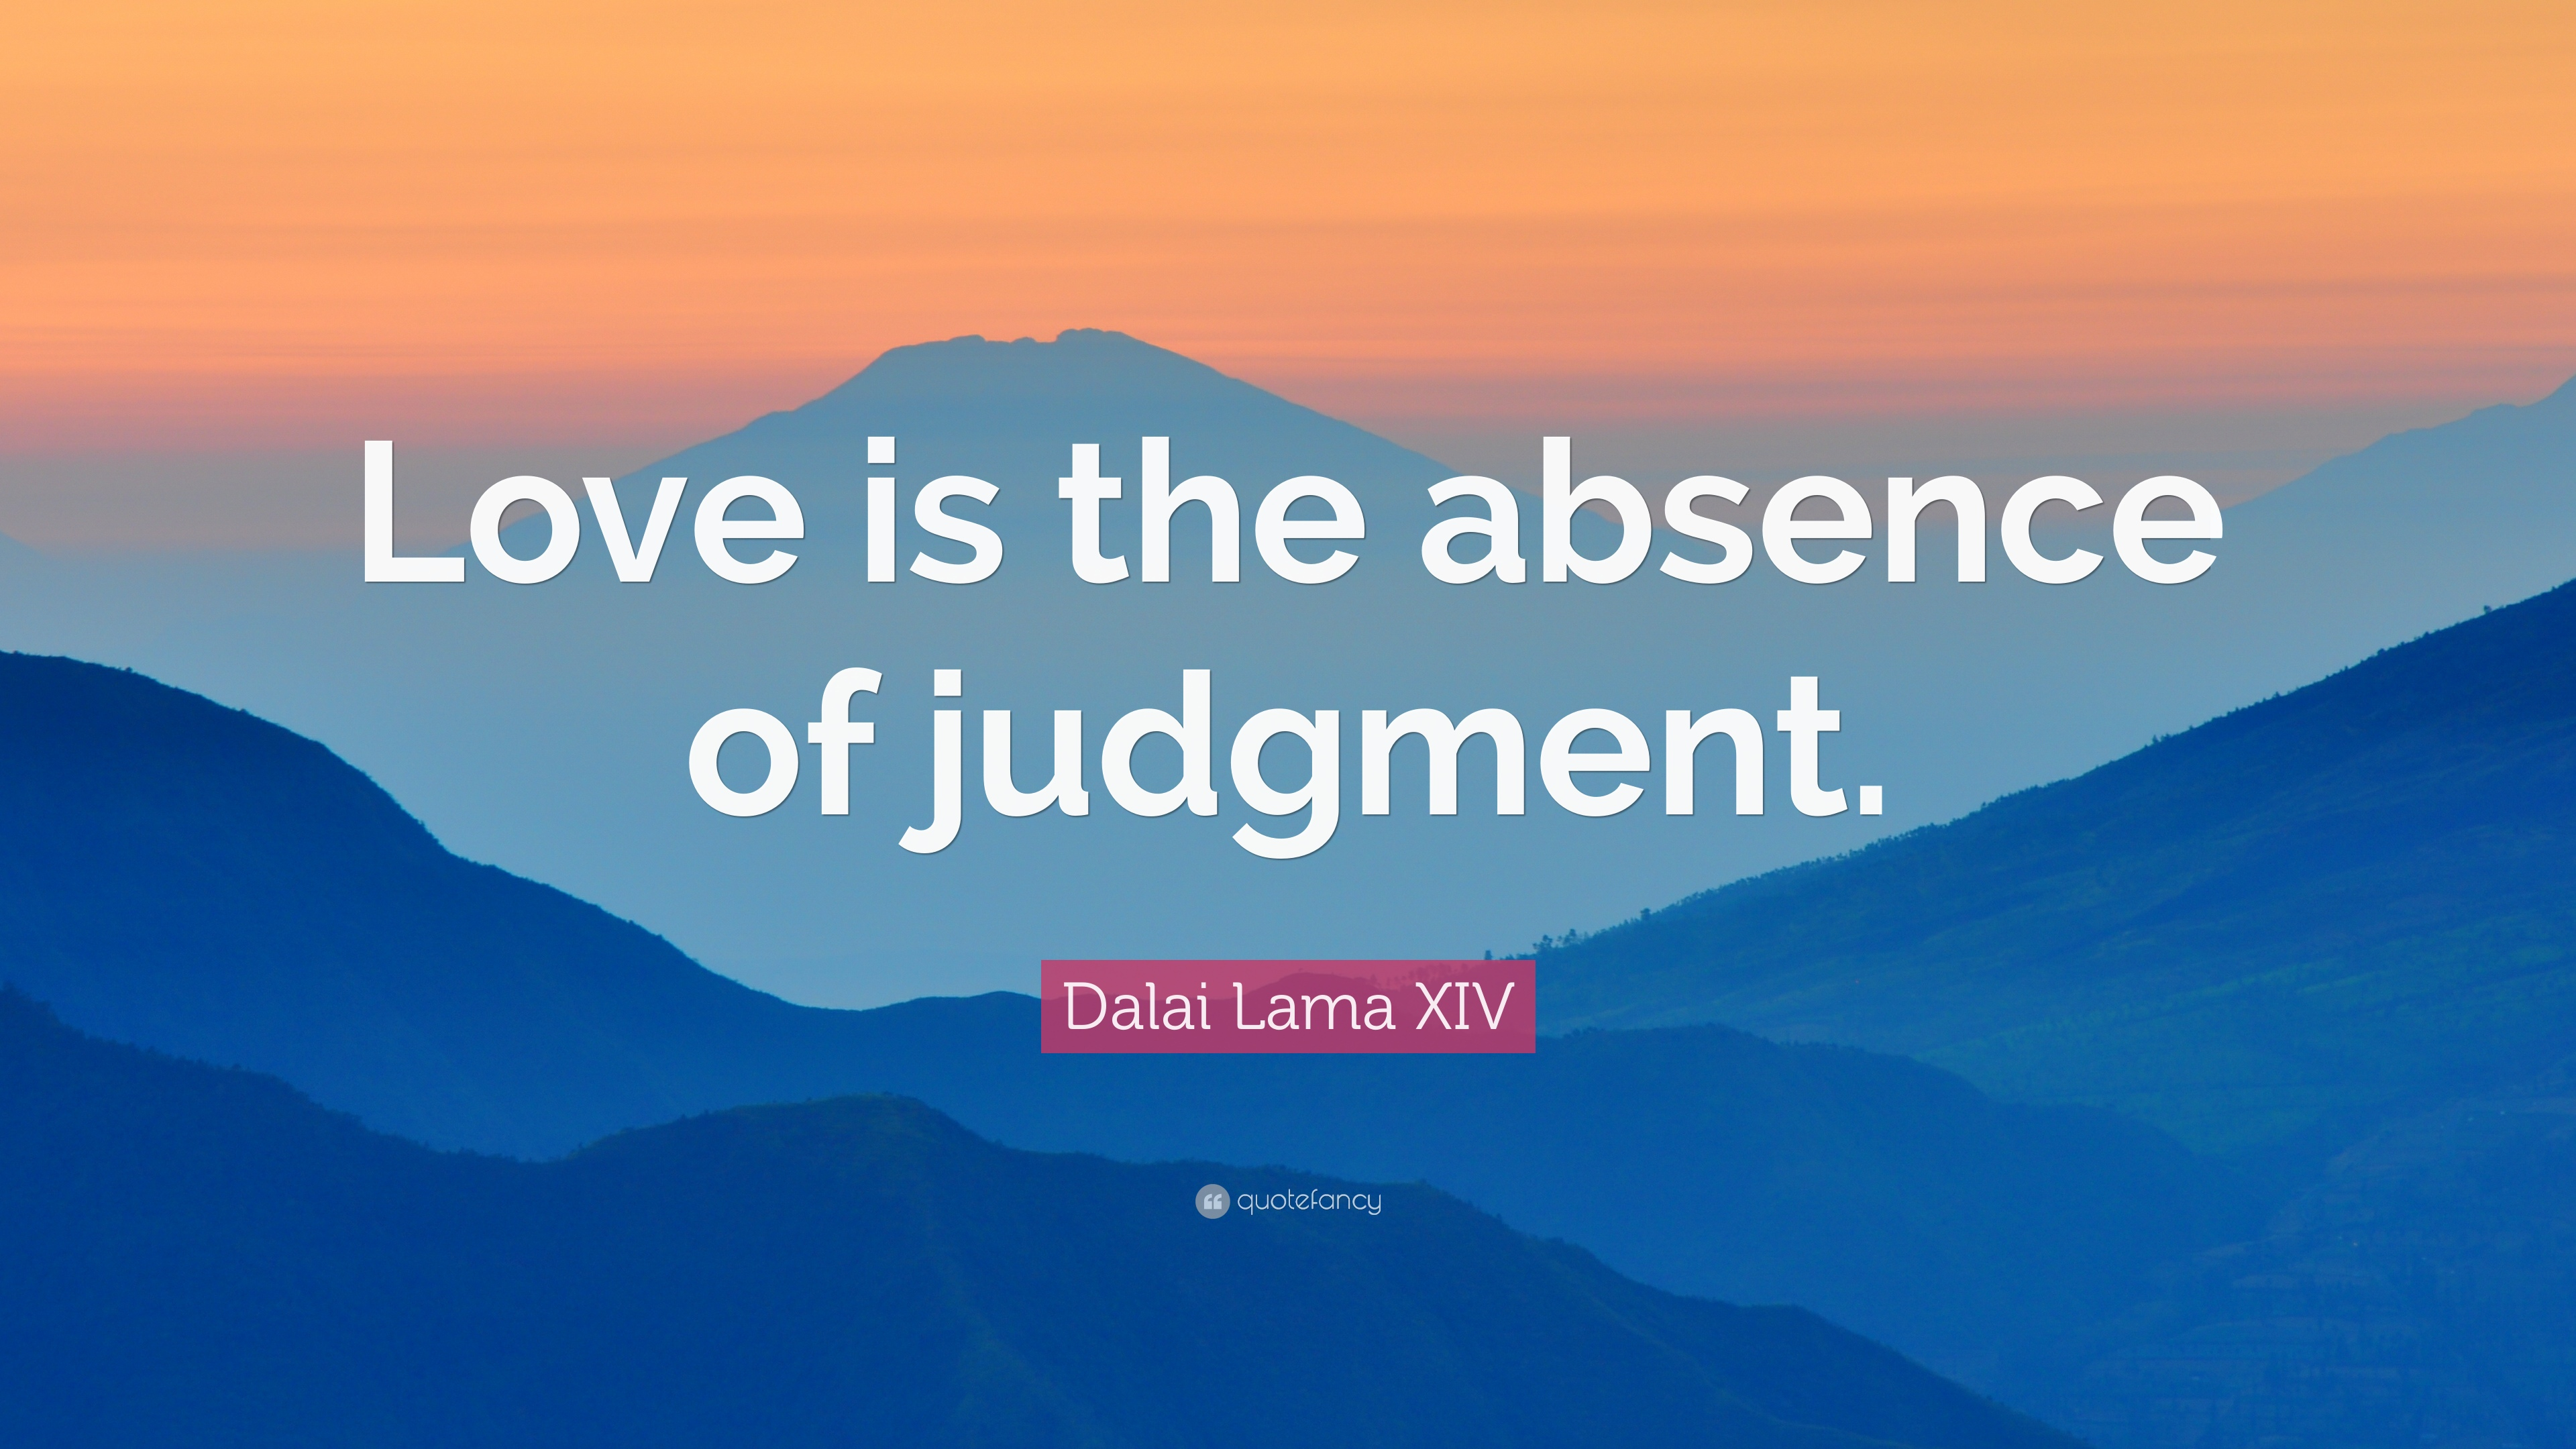 dalai lama xiv quote love is the absence of judgment